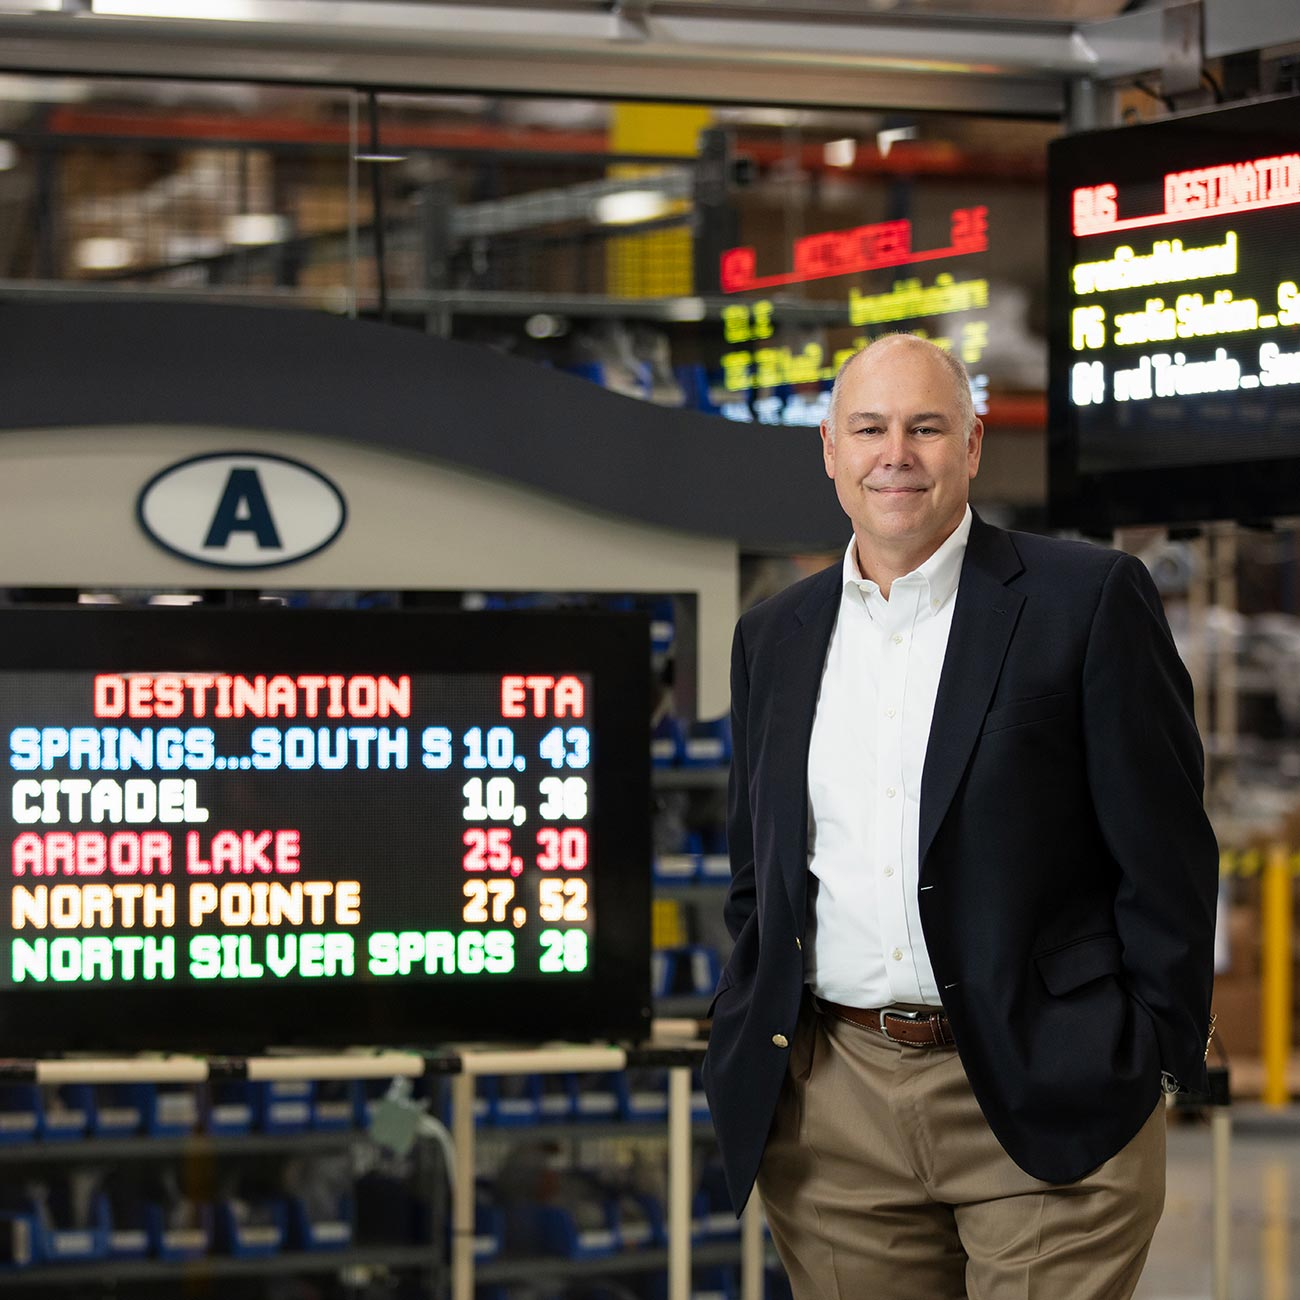 This Electronics Manufacturer in Plano is Driving the Mass Transit Industry Forward